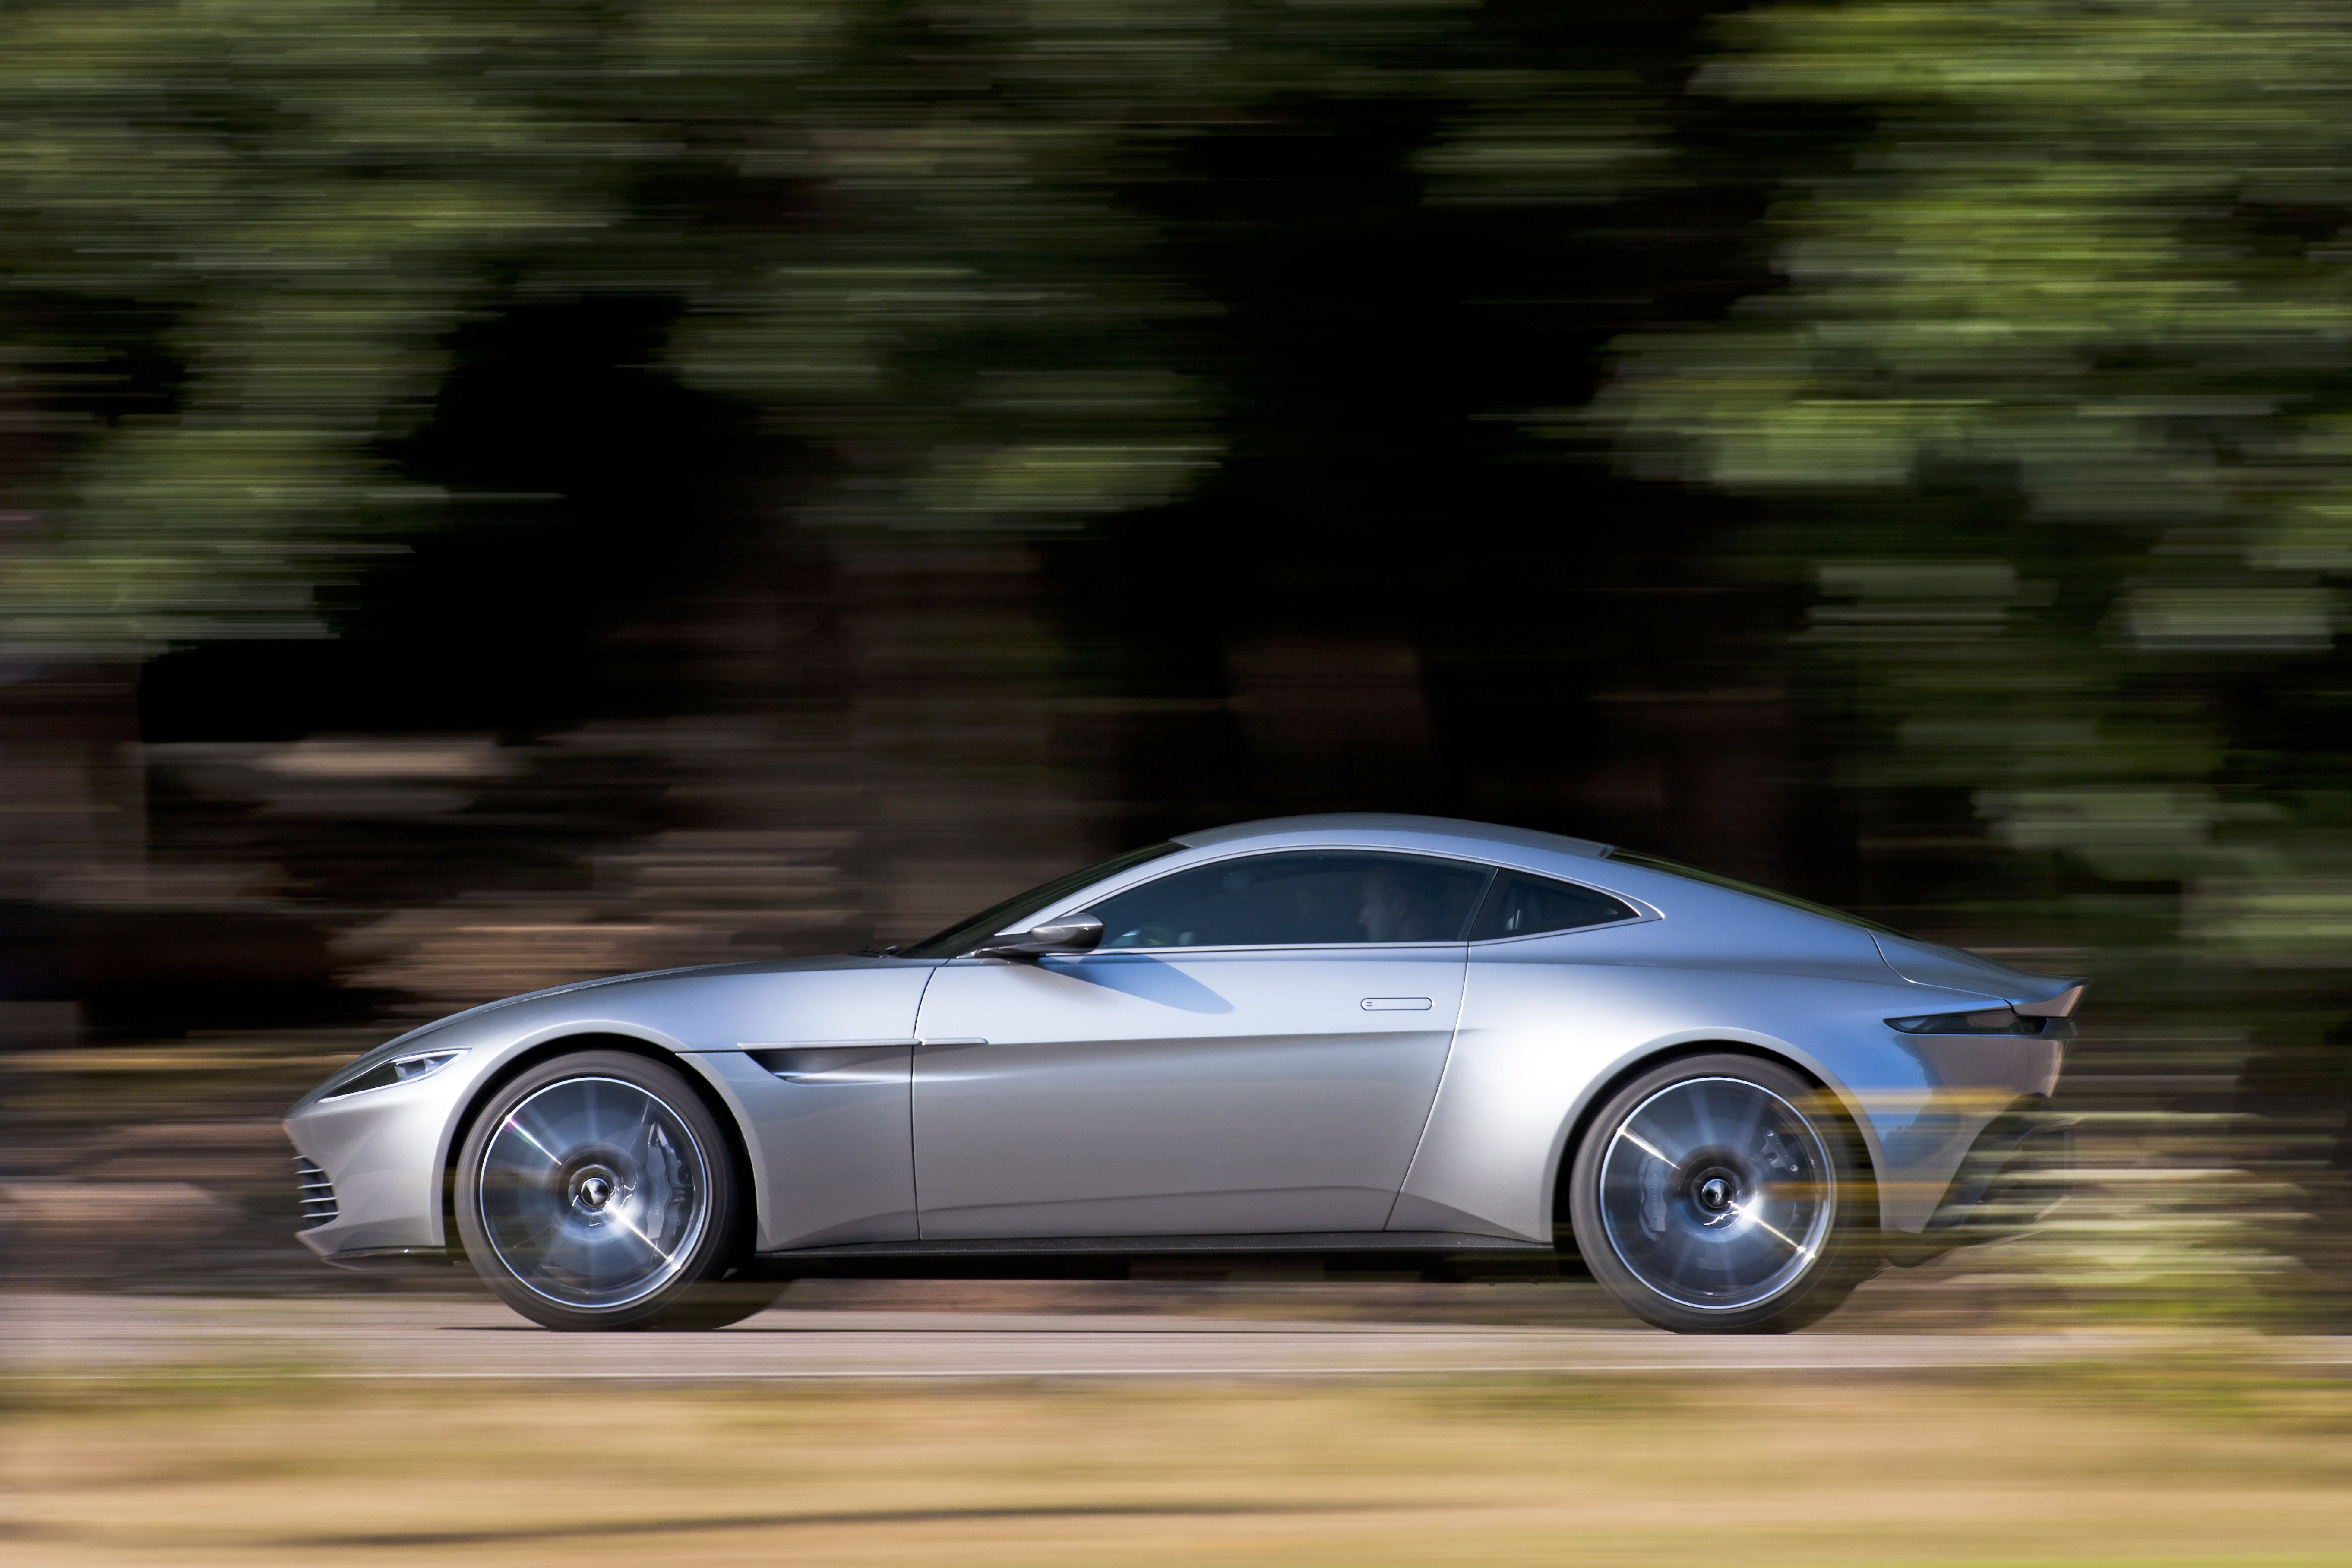 Aston Martin Db10 The Most Wanted Car In The World Aston Martin Db10 Aston Martin Used Aston Martin